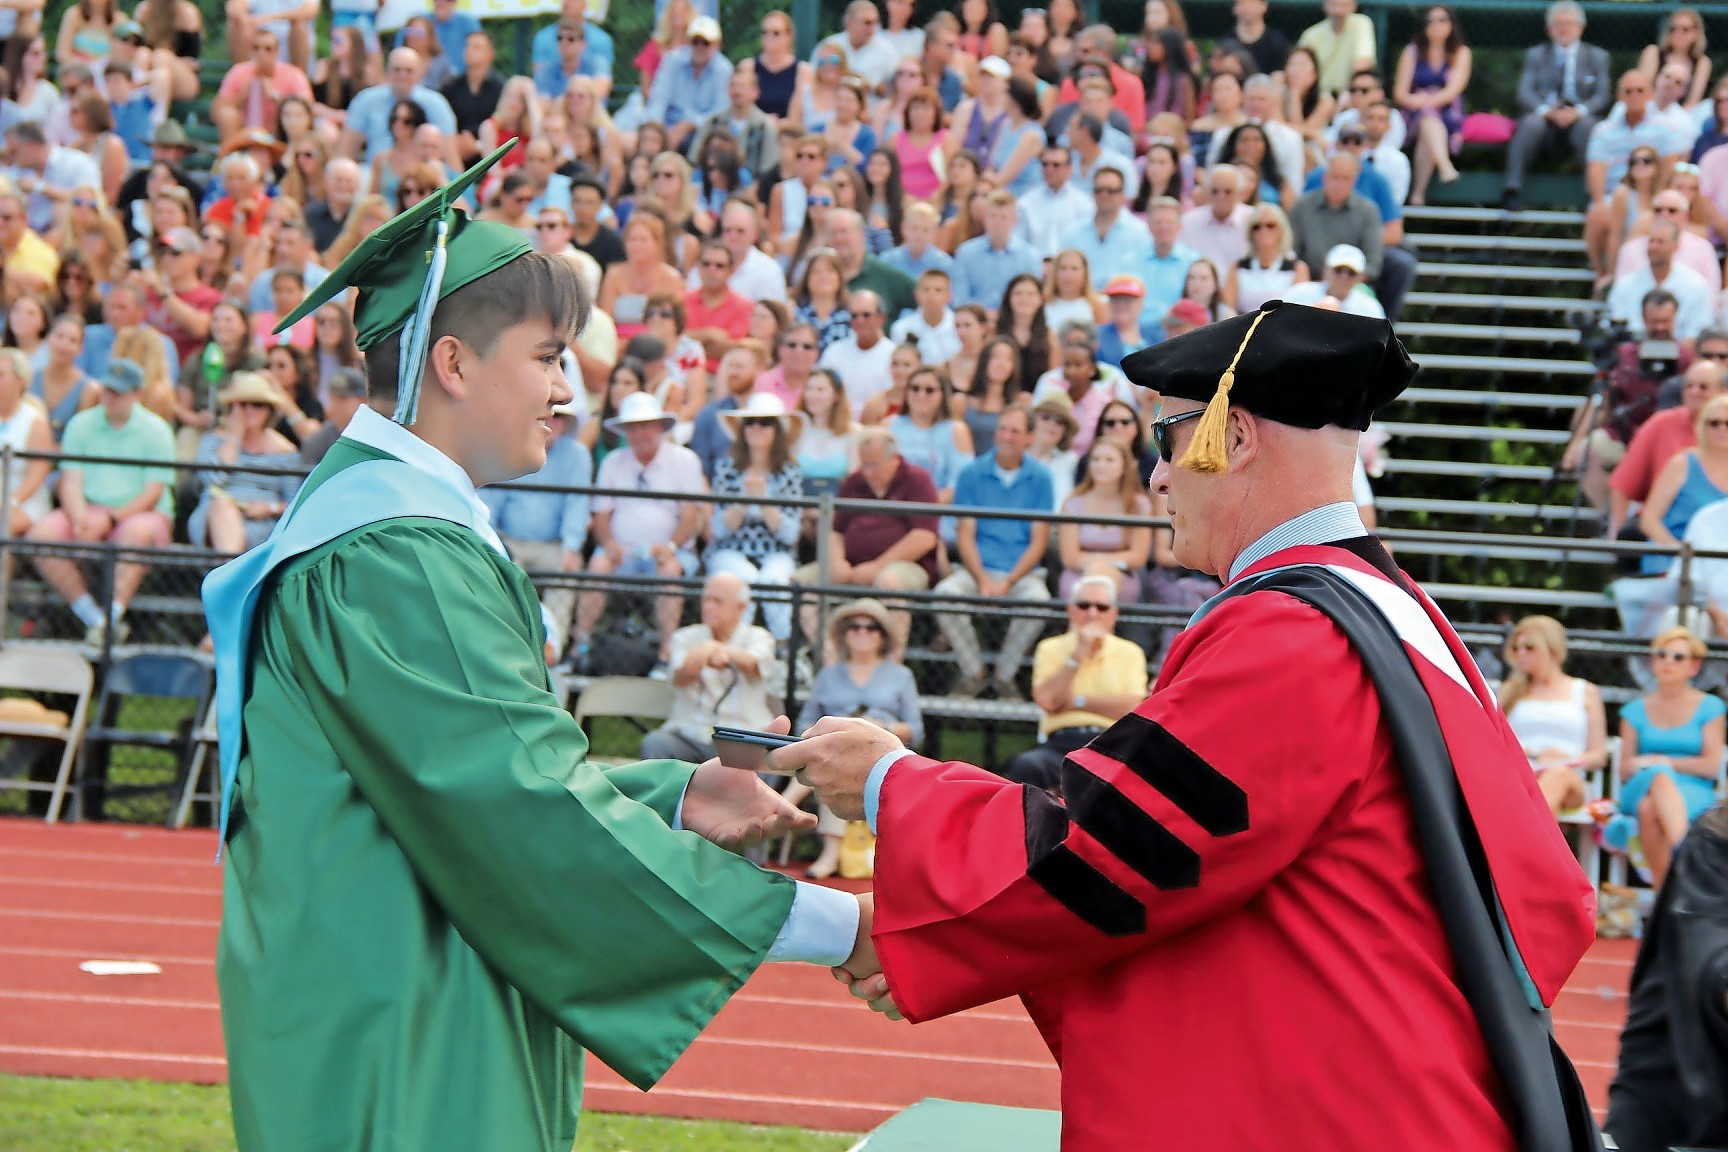 It was a proud moment for Andre Cisneros when he accepted his diploma from Locust Valley High School Principal Dr. Kieran McGuire.